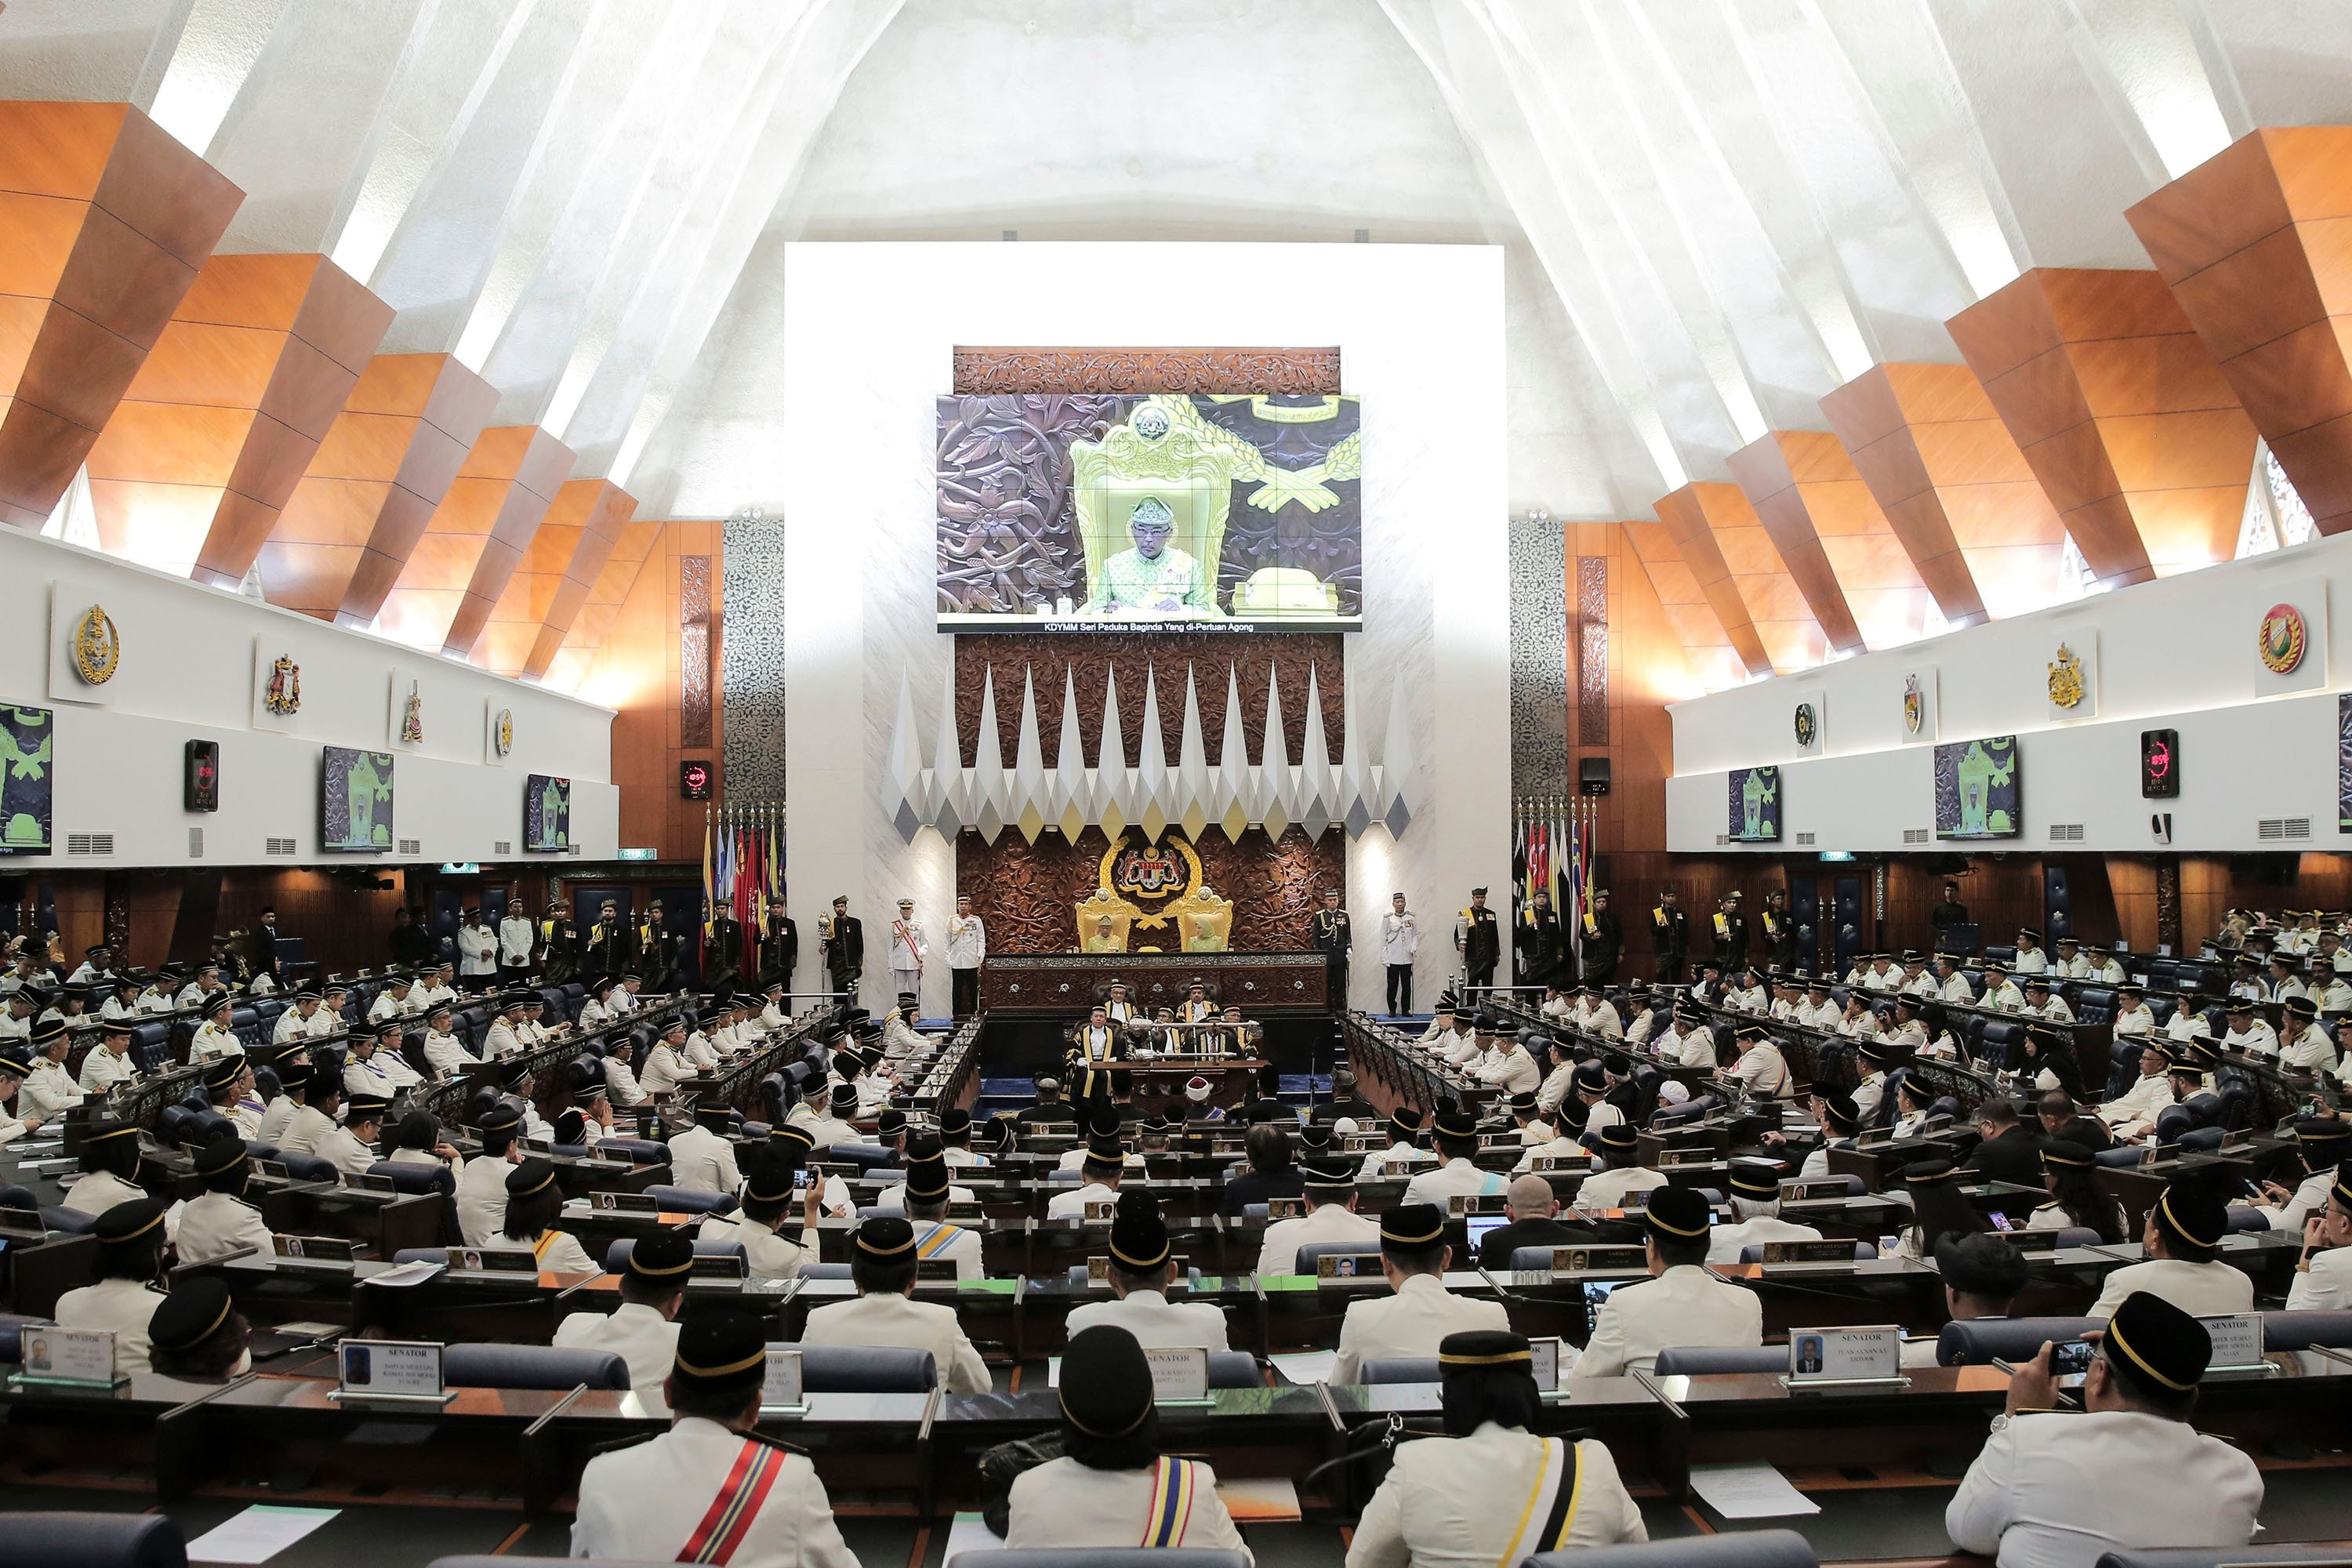 Malaysian members of Parliament take their seats at the parliament house during a session in Kuala Lumpur, Malaysia, March 11, 2019. (Shutterstock Photo)